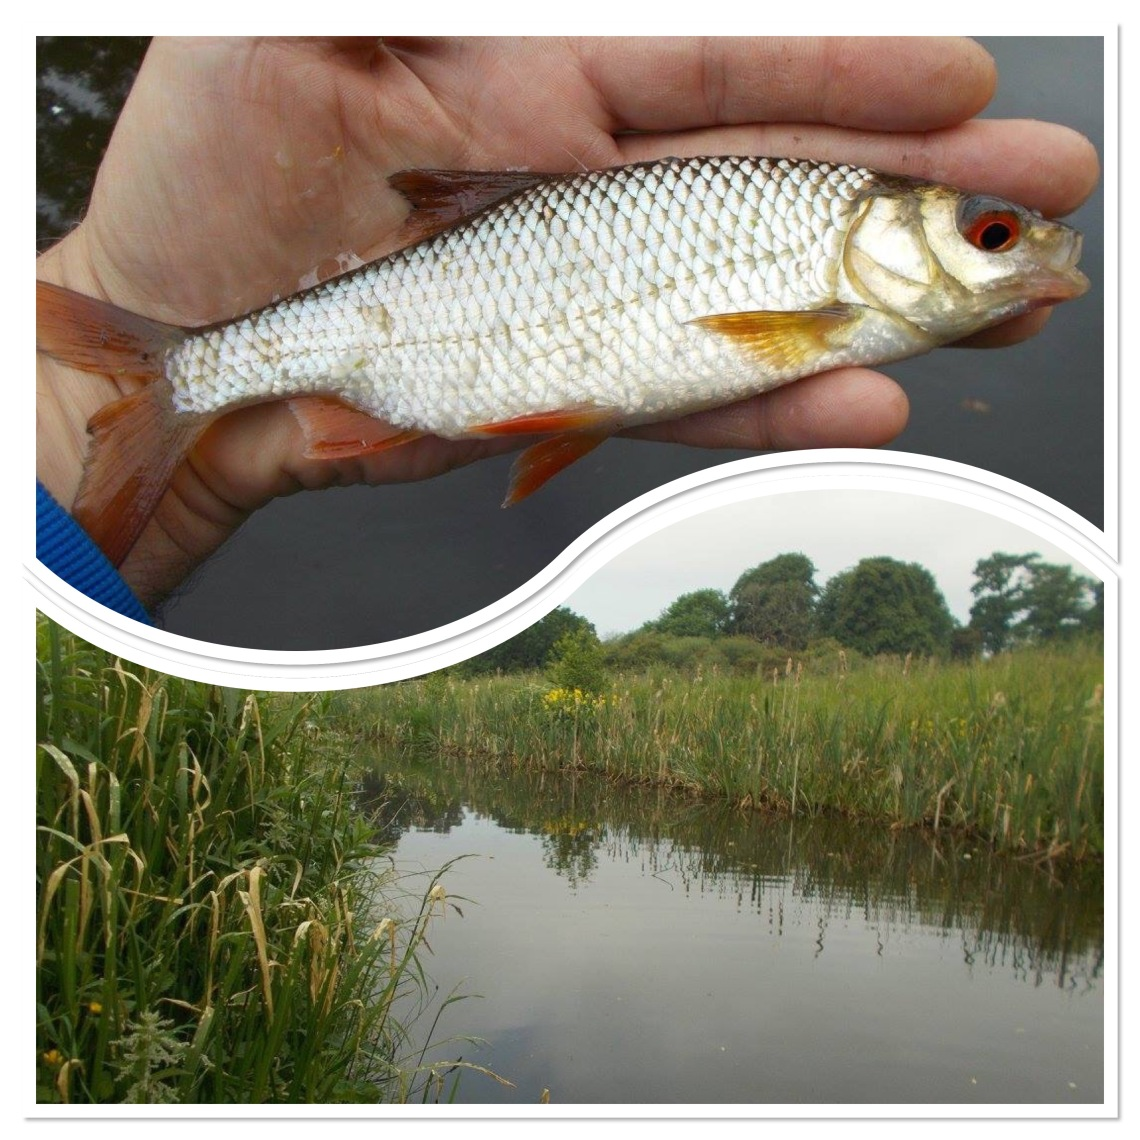 Roach from the canal on drop-shot